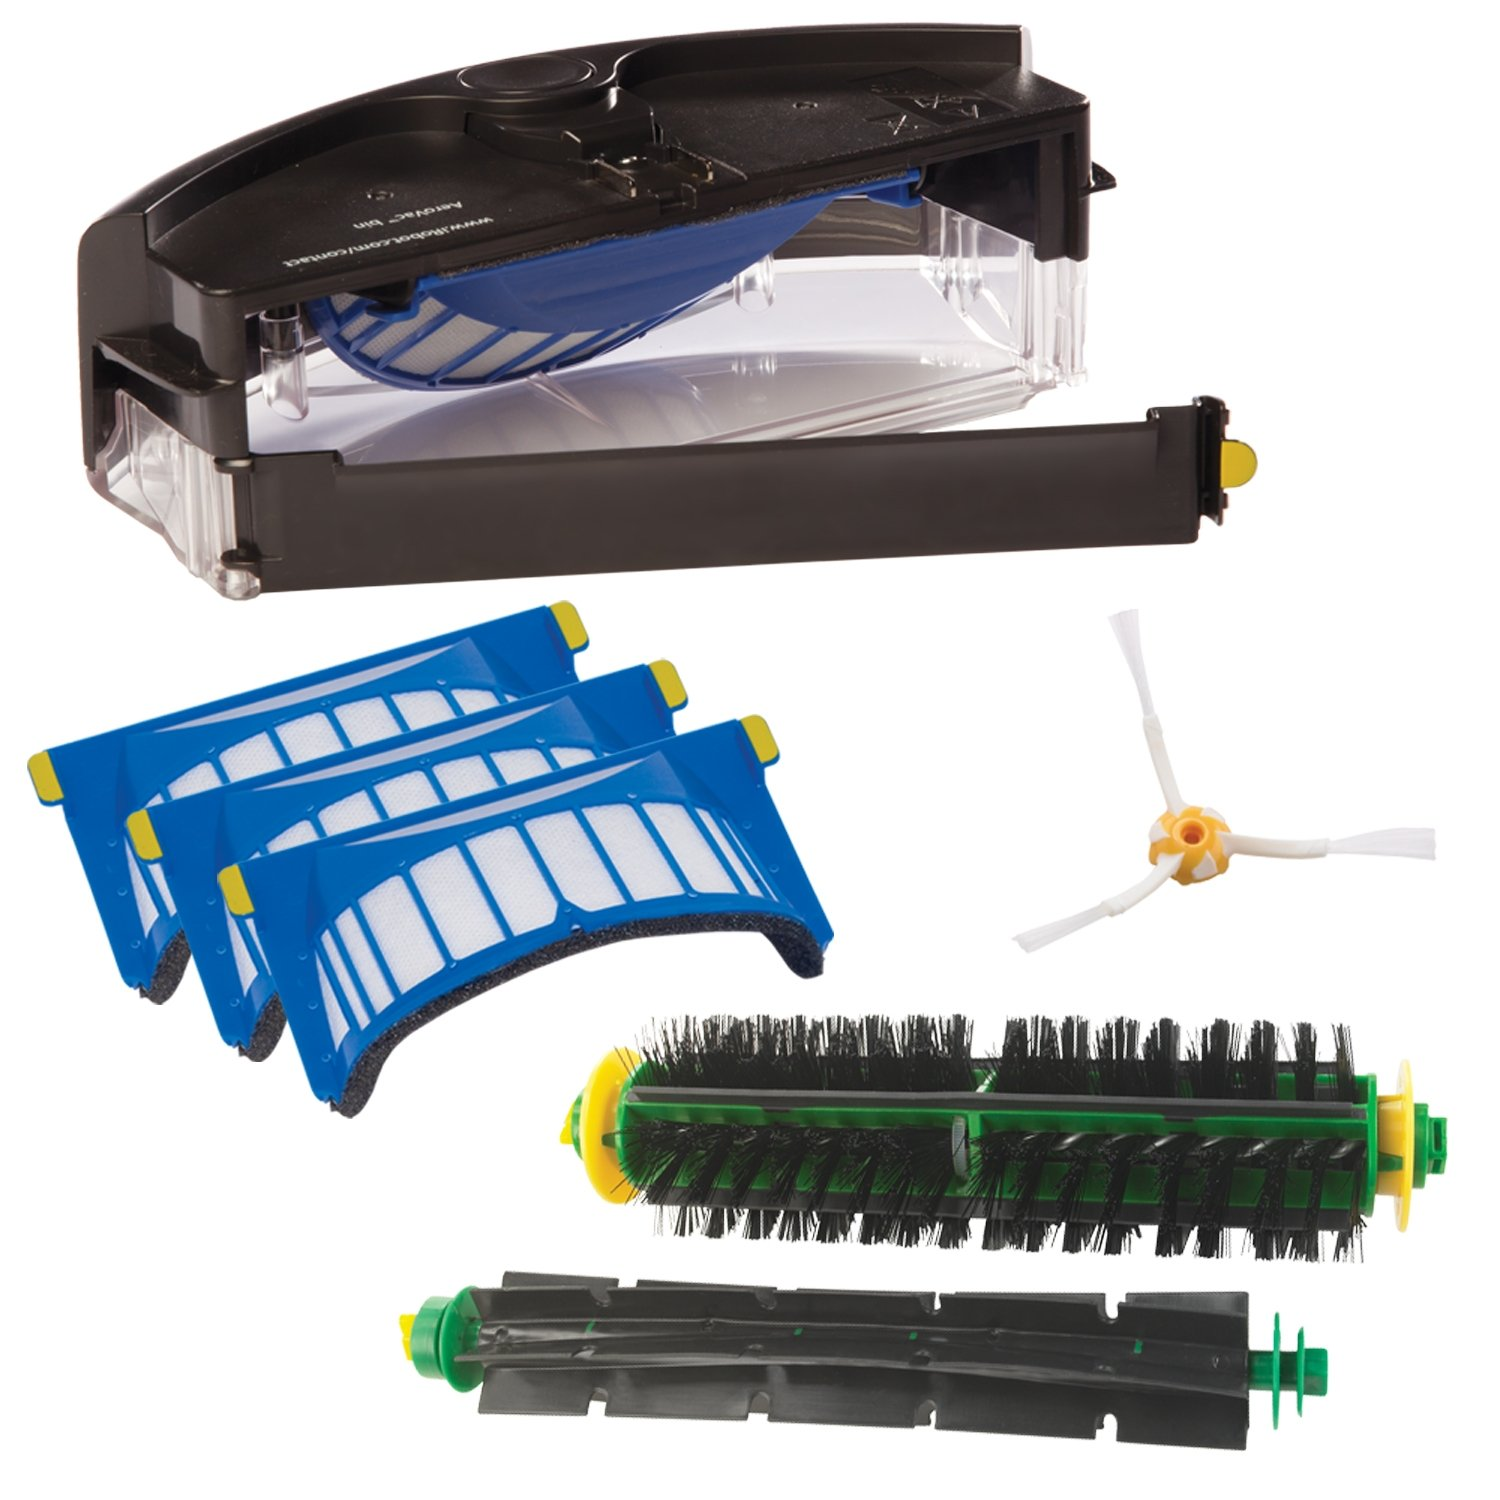 Repuesto Irobot Roomba 500 Series Aerovac Upgrade Kit (xsr)